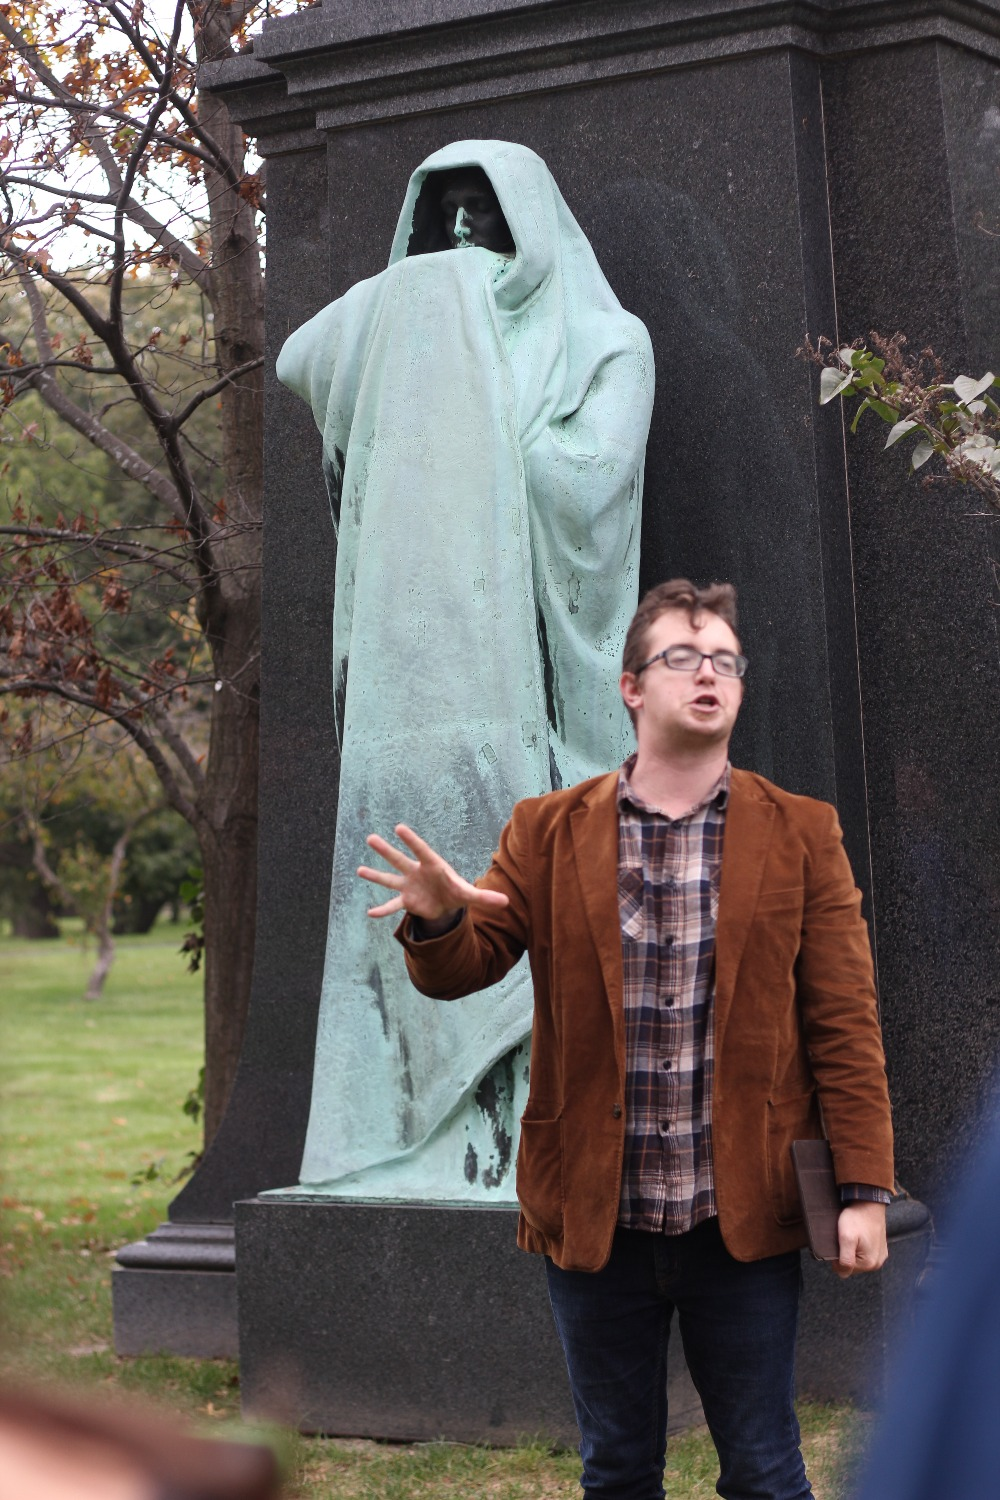 Adam Selzer stands in front of the Eternal Silence statue in Graceland Cemetery as he explains the monument's history to people on a tour of the cemetery. (Rachel Fernandez, 14 East)